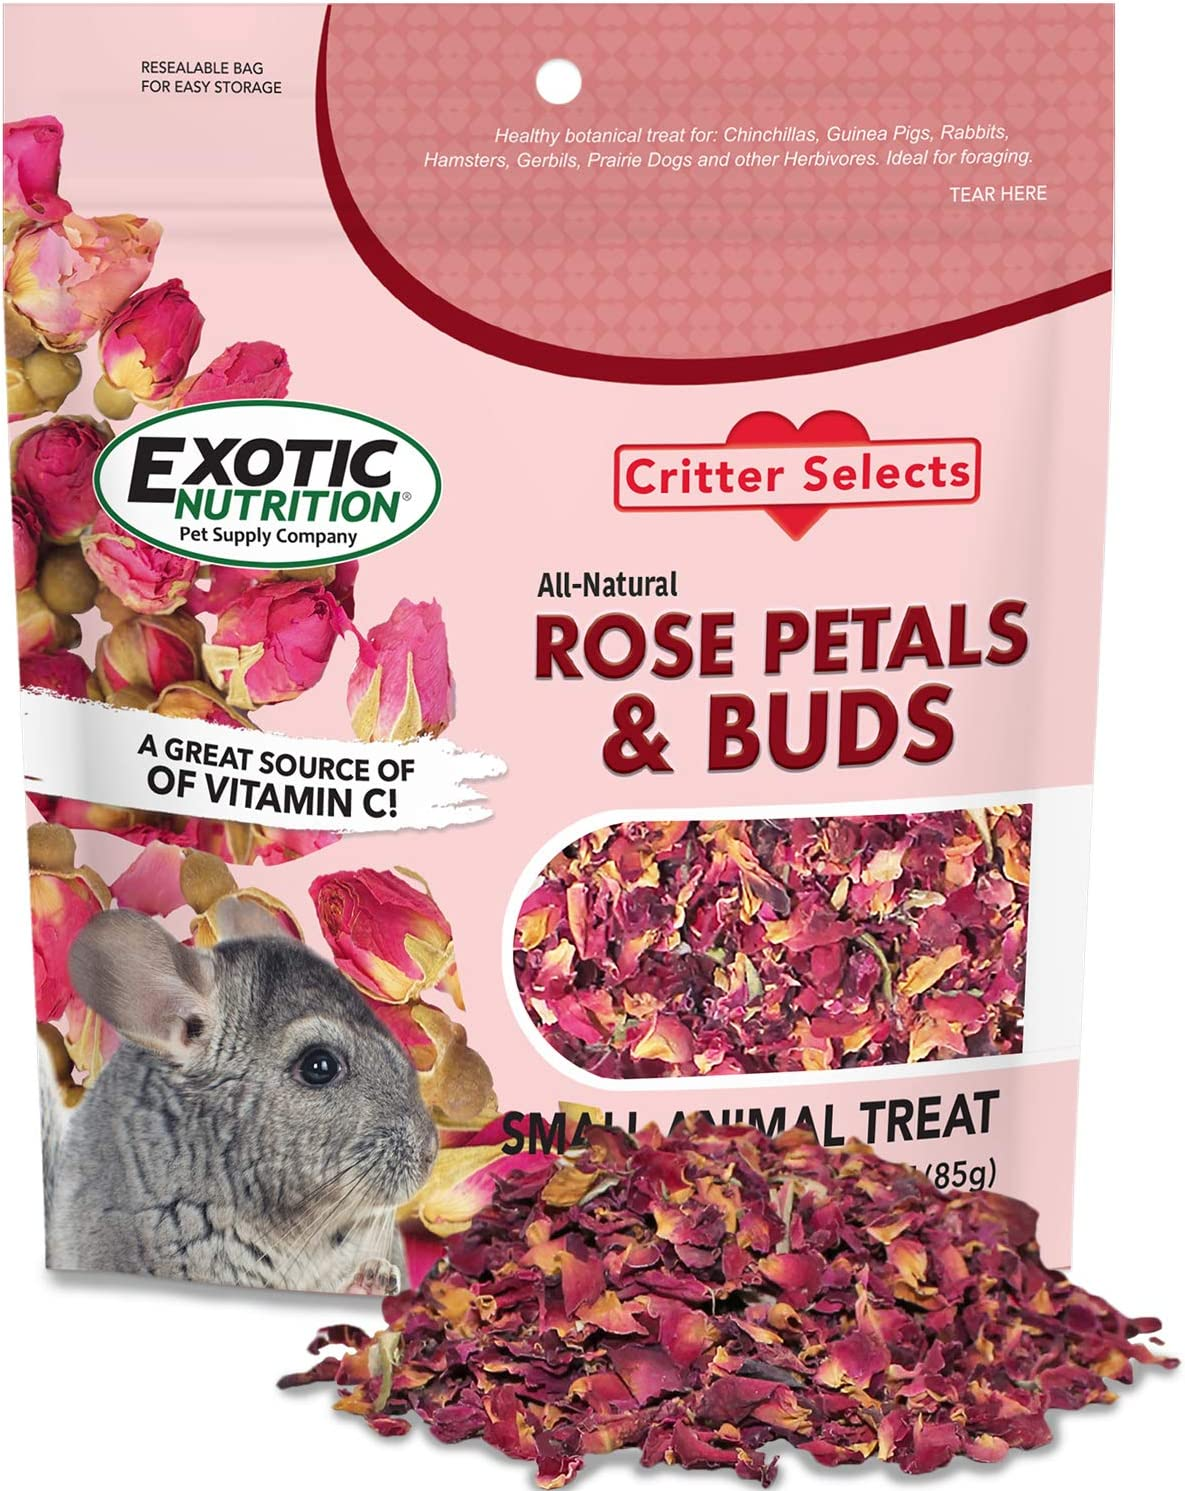 Rose Petals & Buds Treat (0.85 oz.) - Healthy Natural Dried Flower Herbivore Treat - Chinchillas, Guinea Pigs, Rabbits, Prairie Dogs, Degus, Hamsters, Rats, Squirrels, Sugar Gliders & Other Small Pets